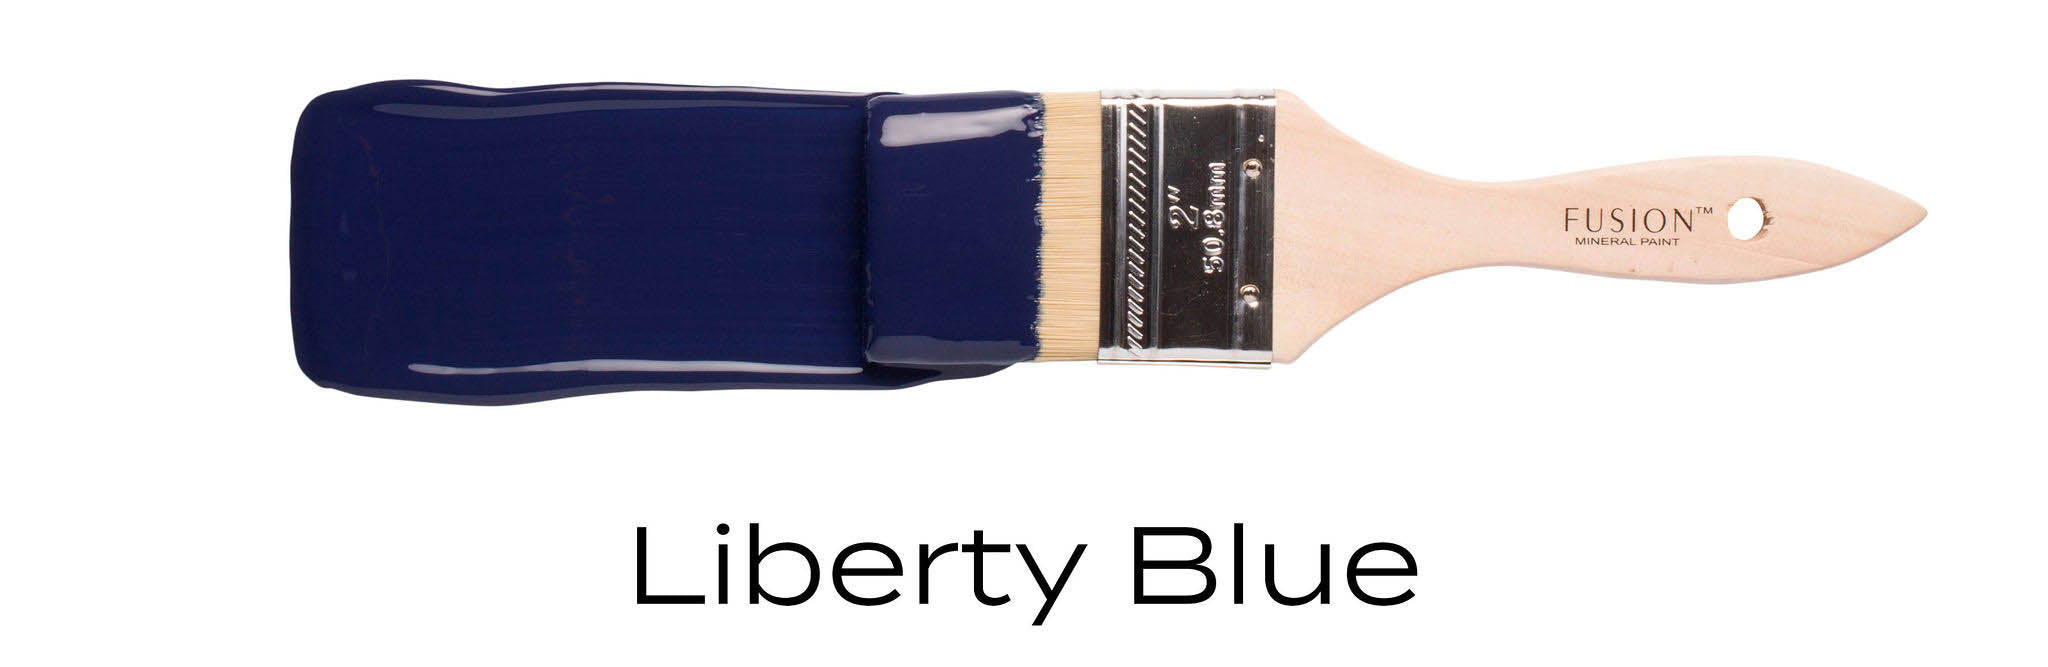 Liberty Blue Fusion Mineral Paint Dark deep blue furniture pain UK supplier stockist